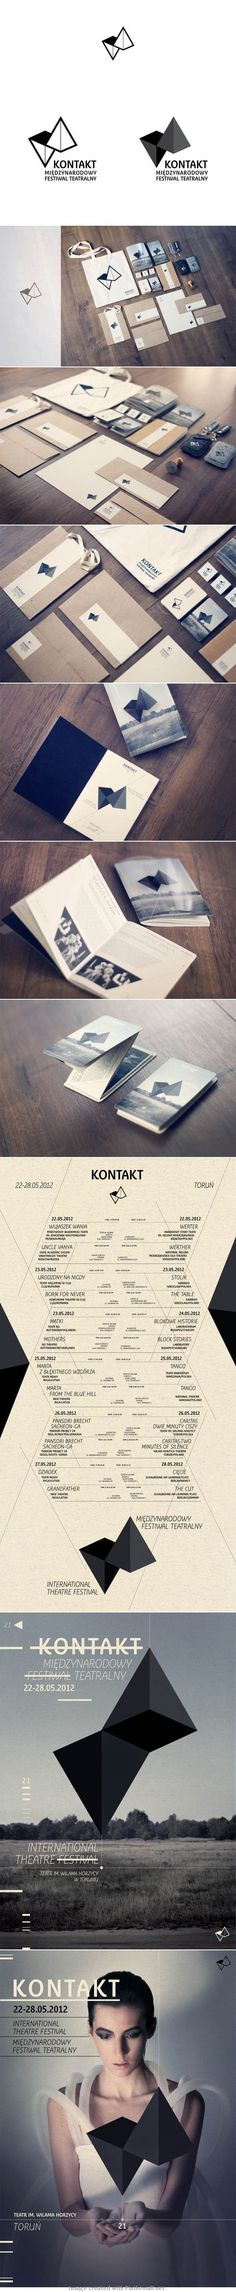 Graphic design: 25 quality projects based on visual identities and branding | Blog du Webdesign